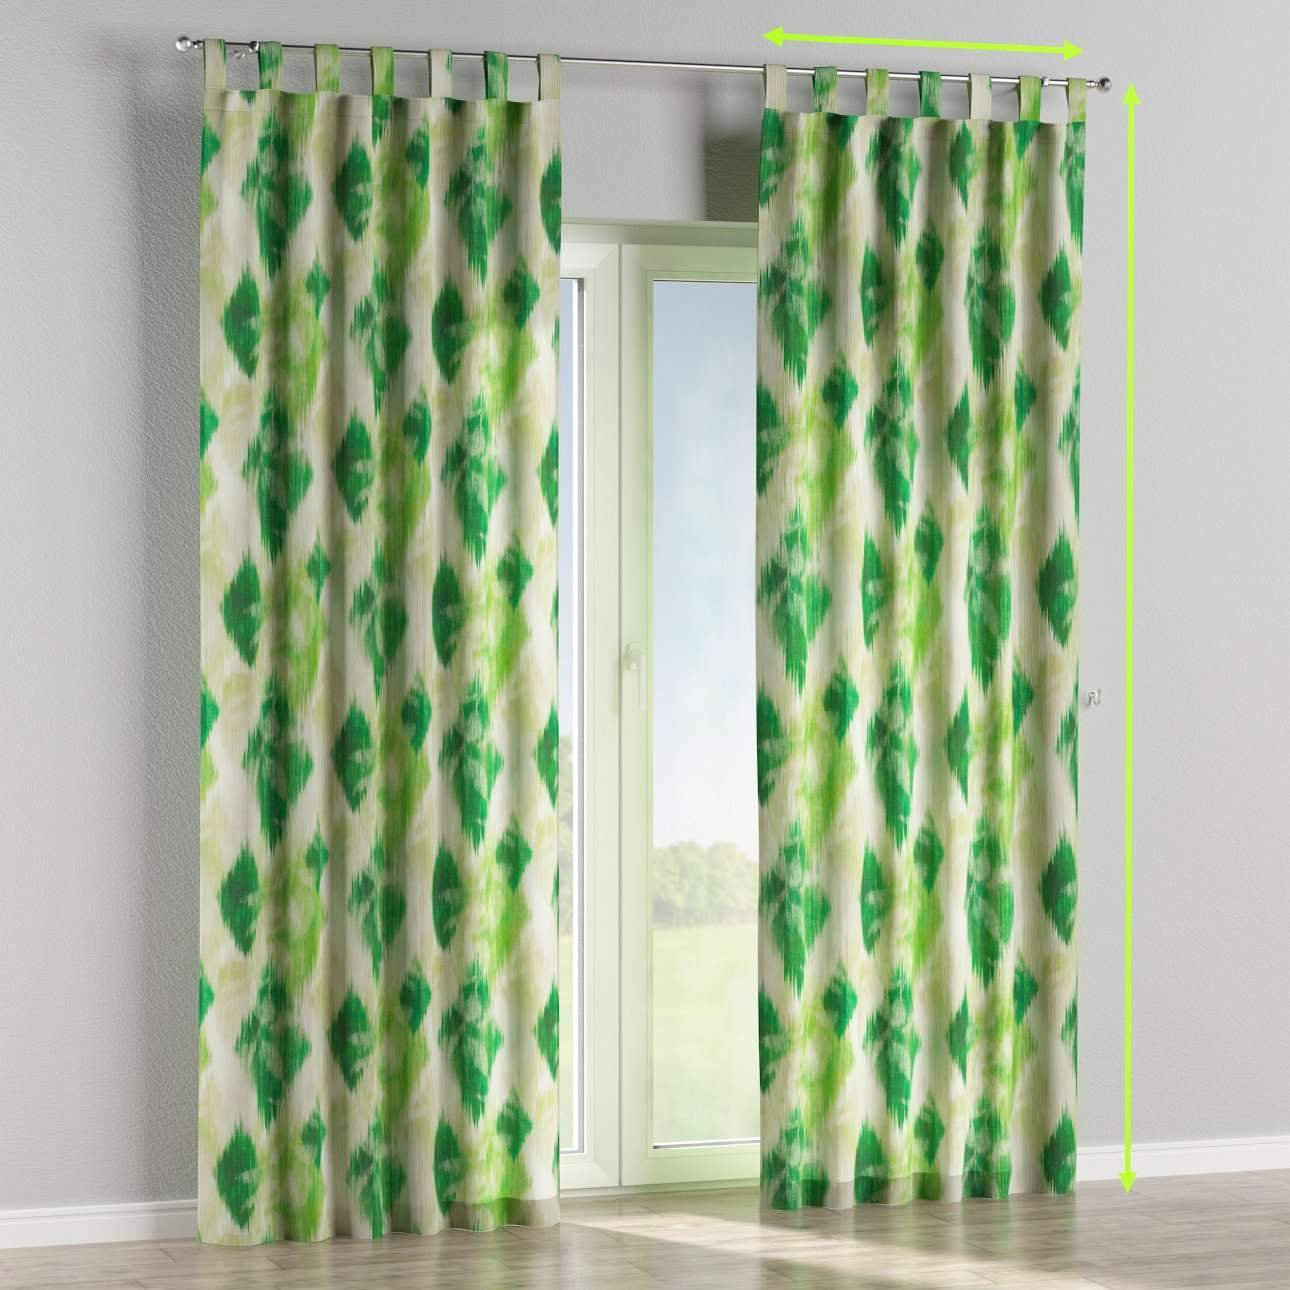 Tab top curtains in collection Aquarelle, fabric: 140-70